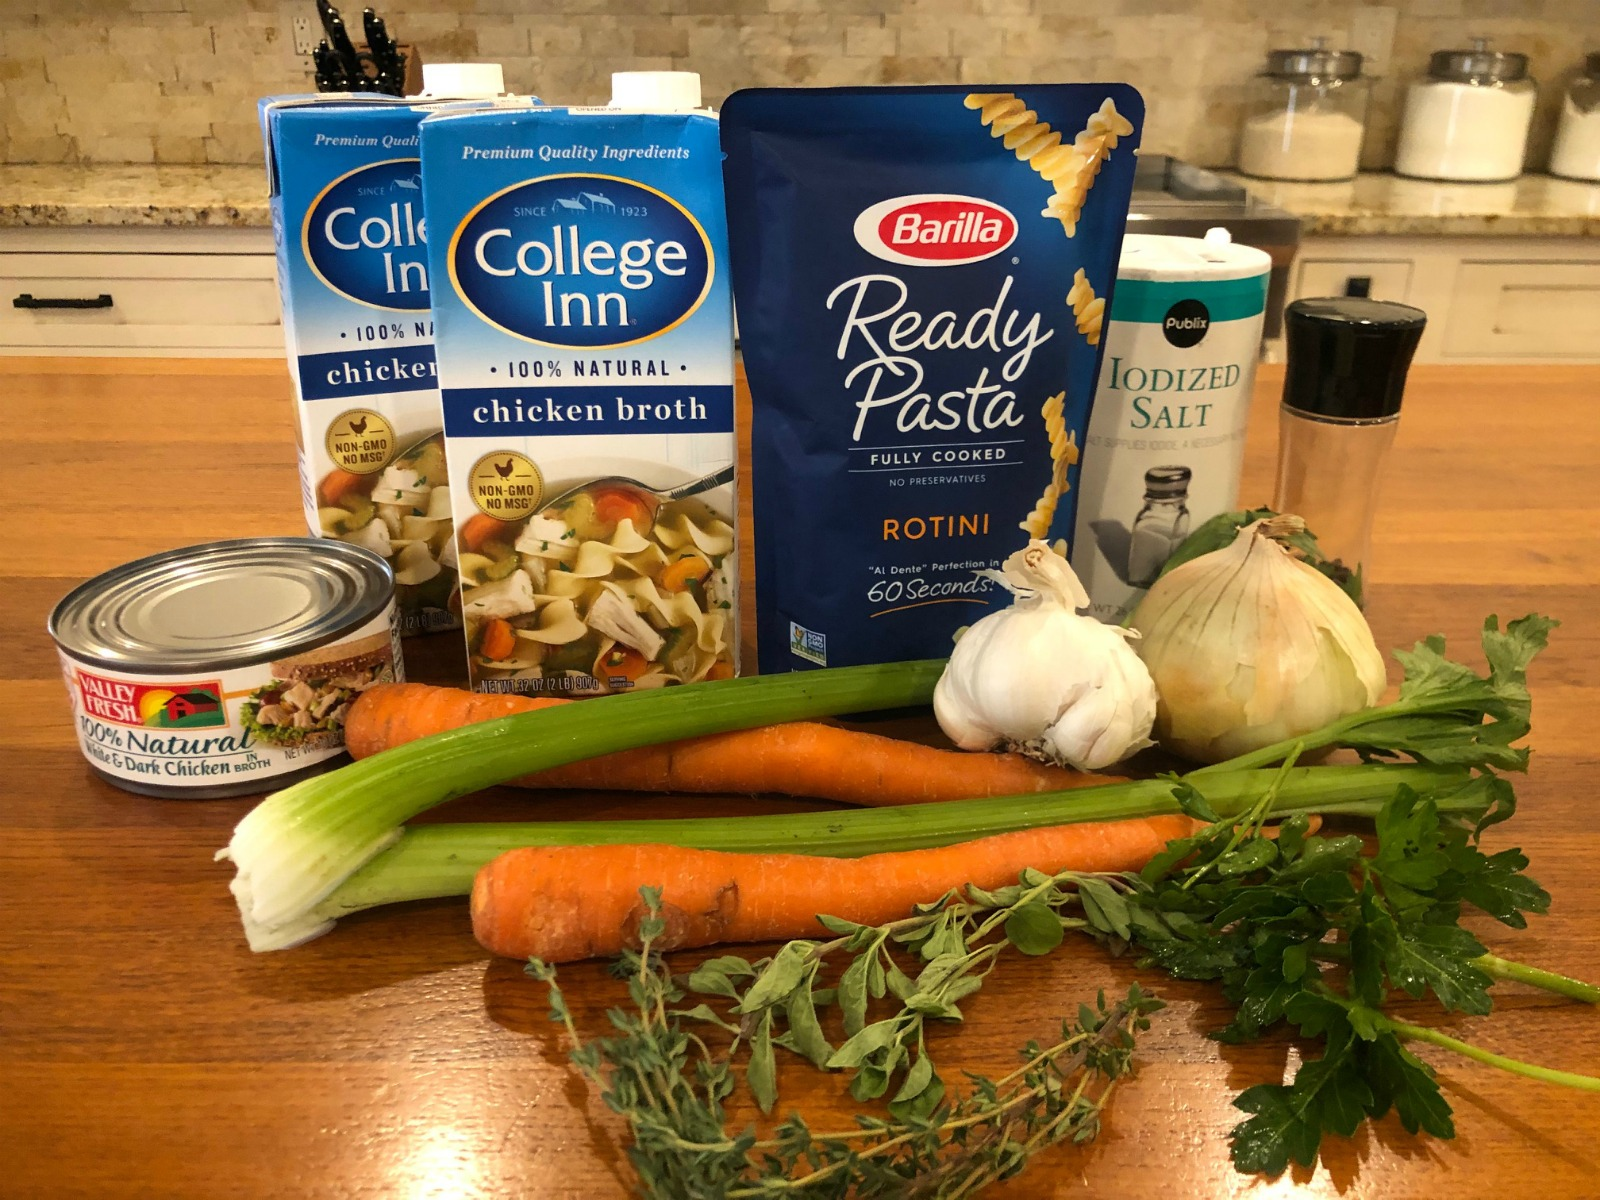 Easiest Chicken Noodle Soup - Super Recipe To Go With The Sales At Publix on I Heart Publix